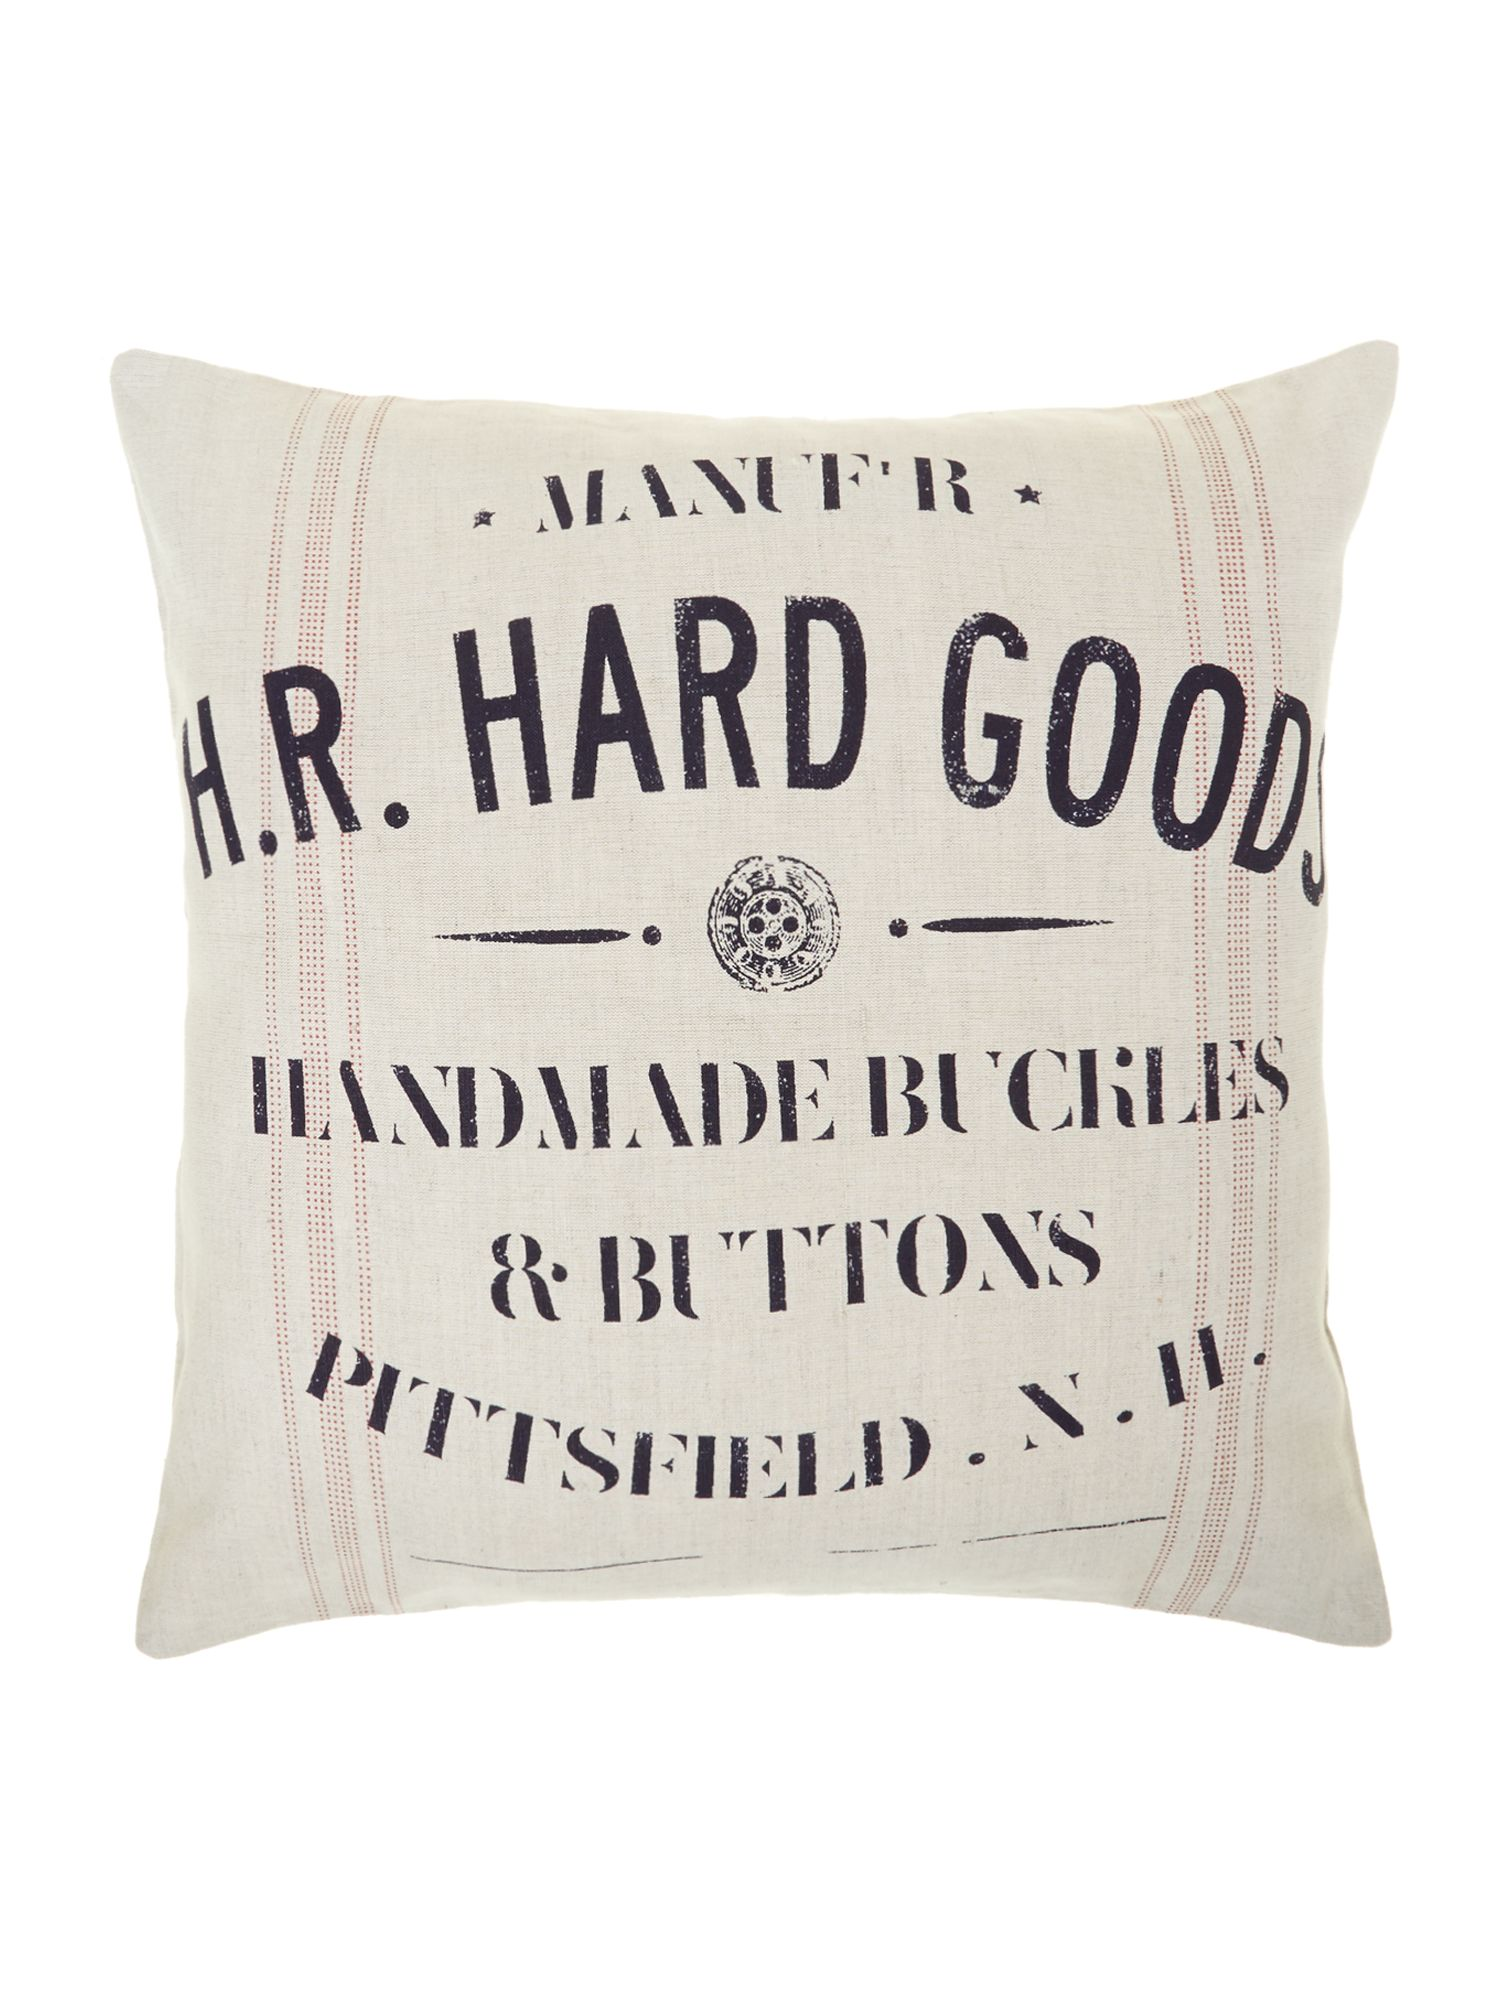 Handmade buttons advertisement cushion